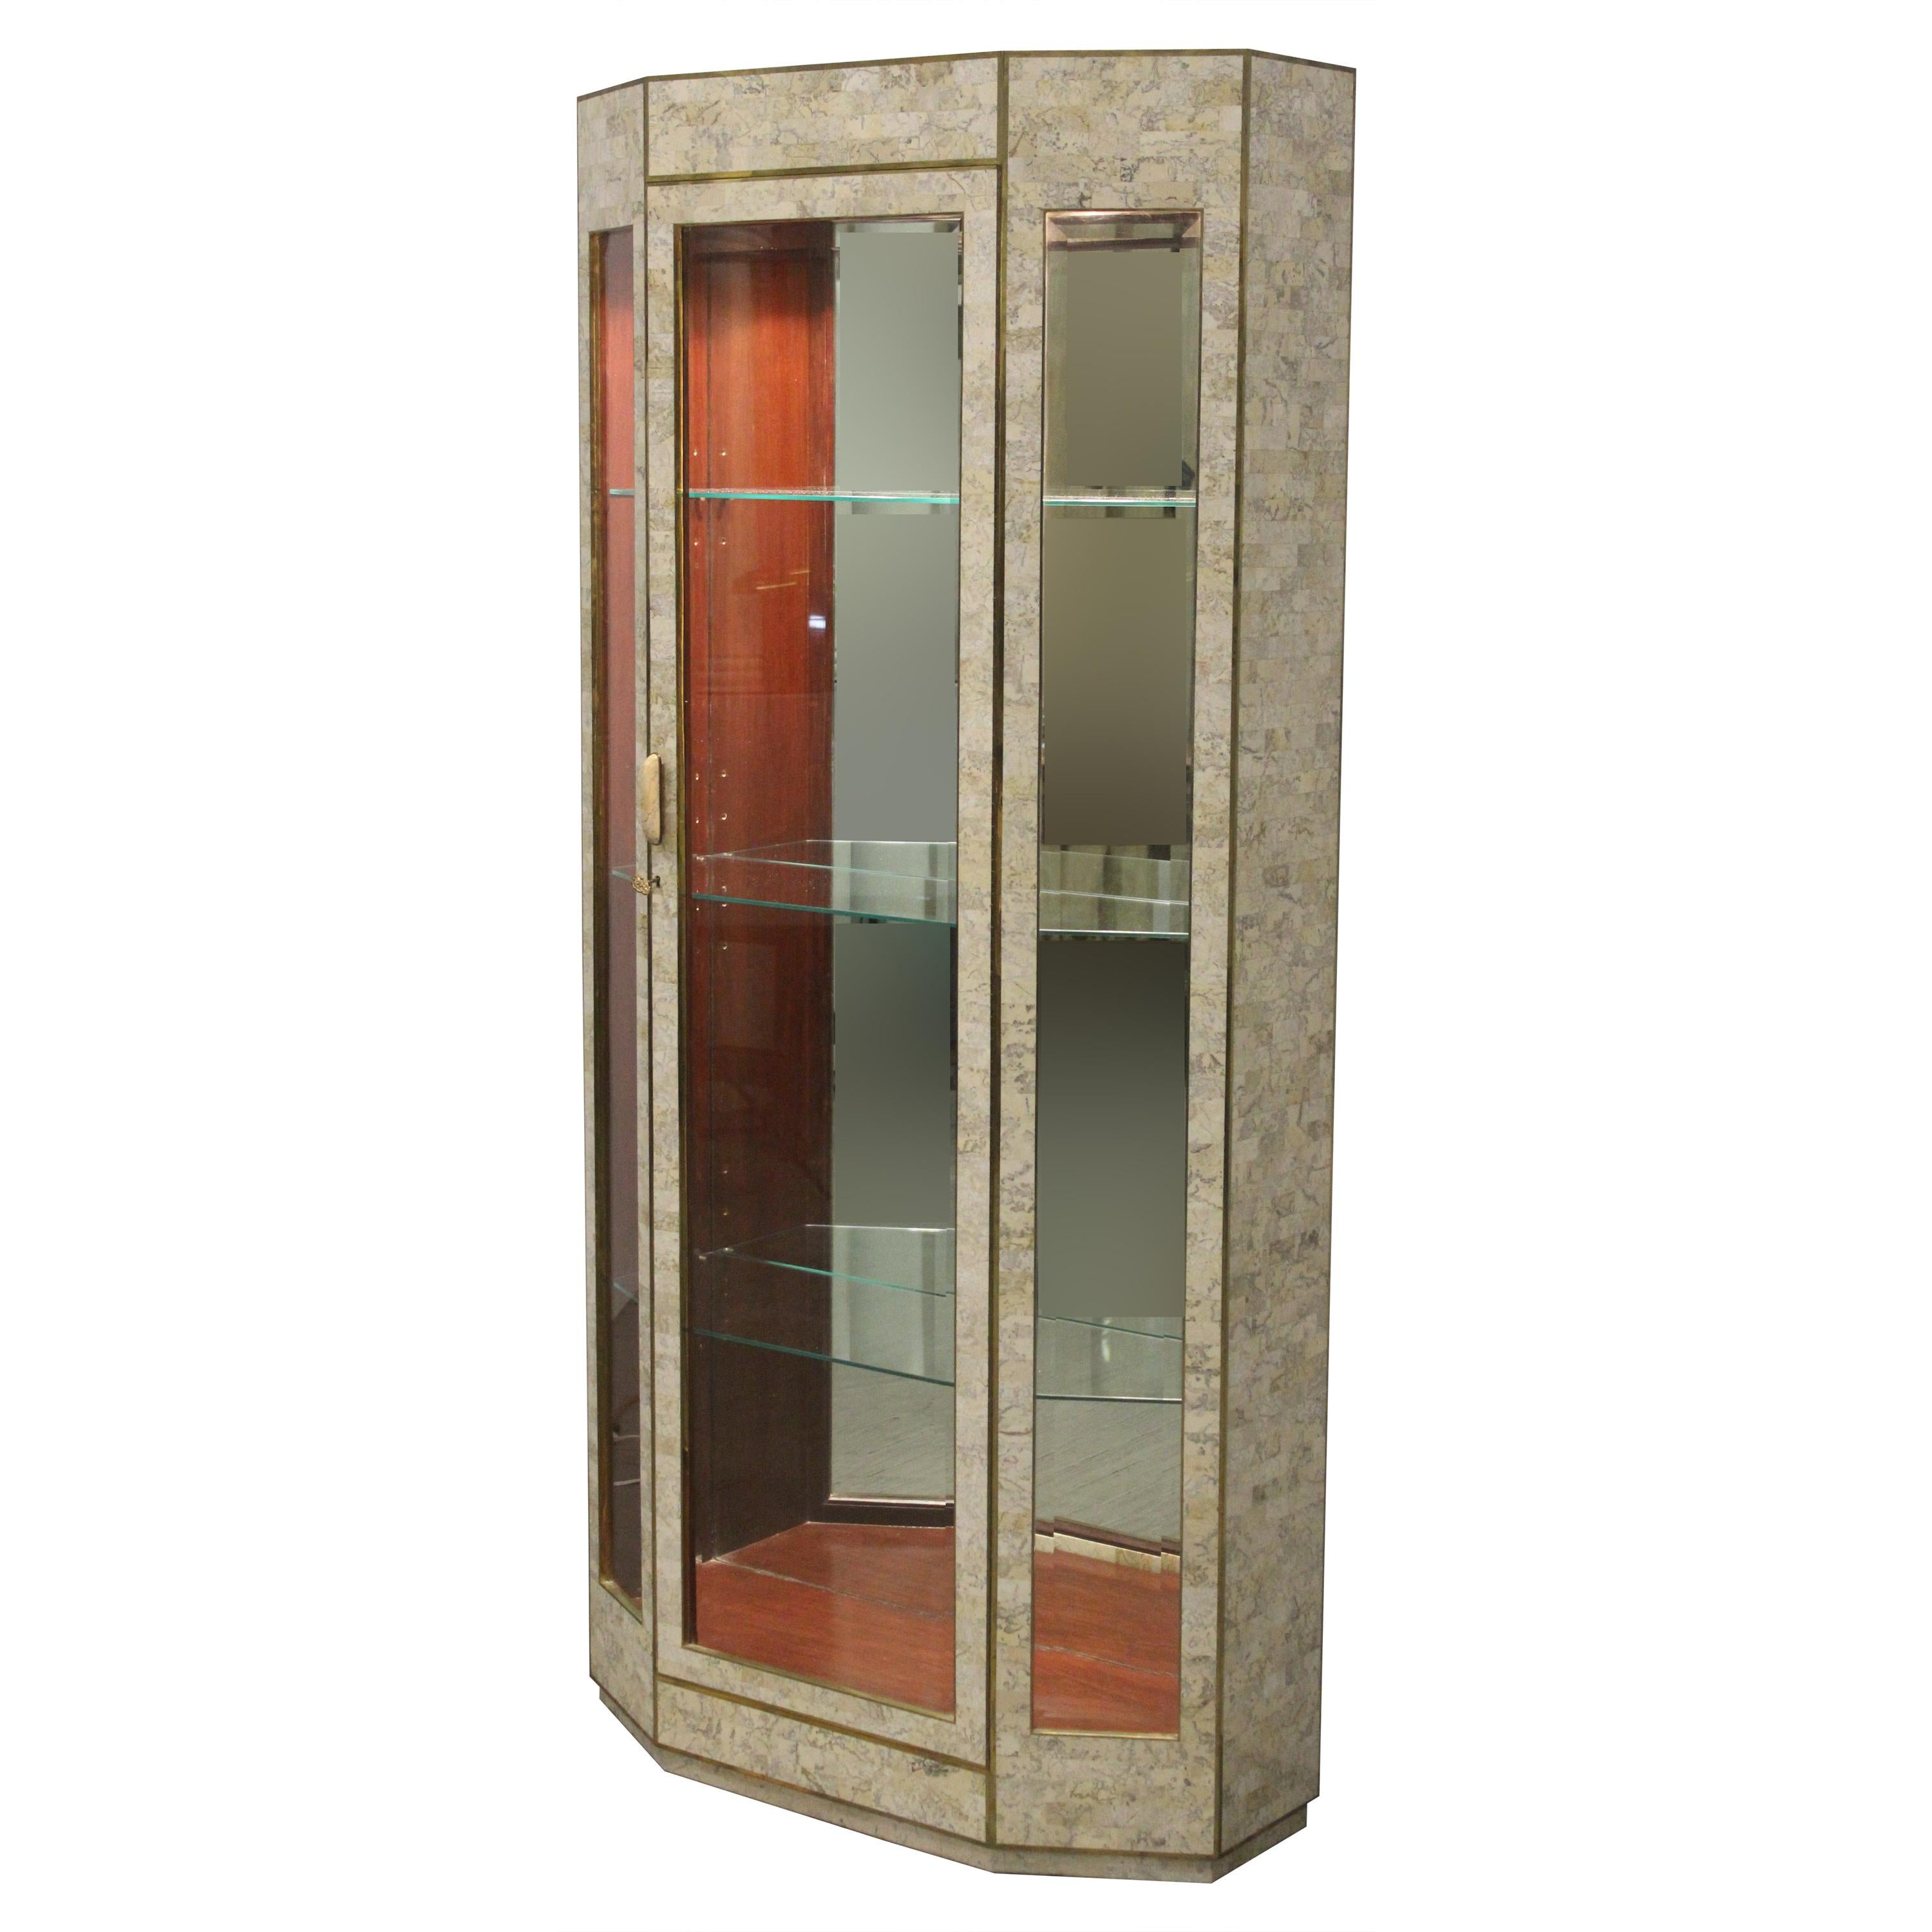 Lighted Tessellated Stone Vitrine Display Case by Maitland Smith, 1980s